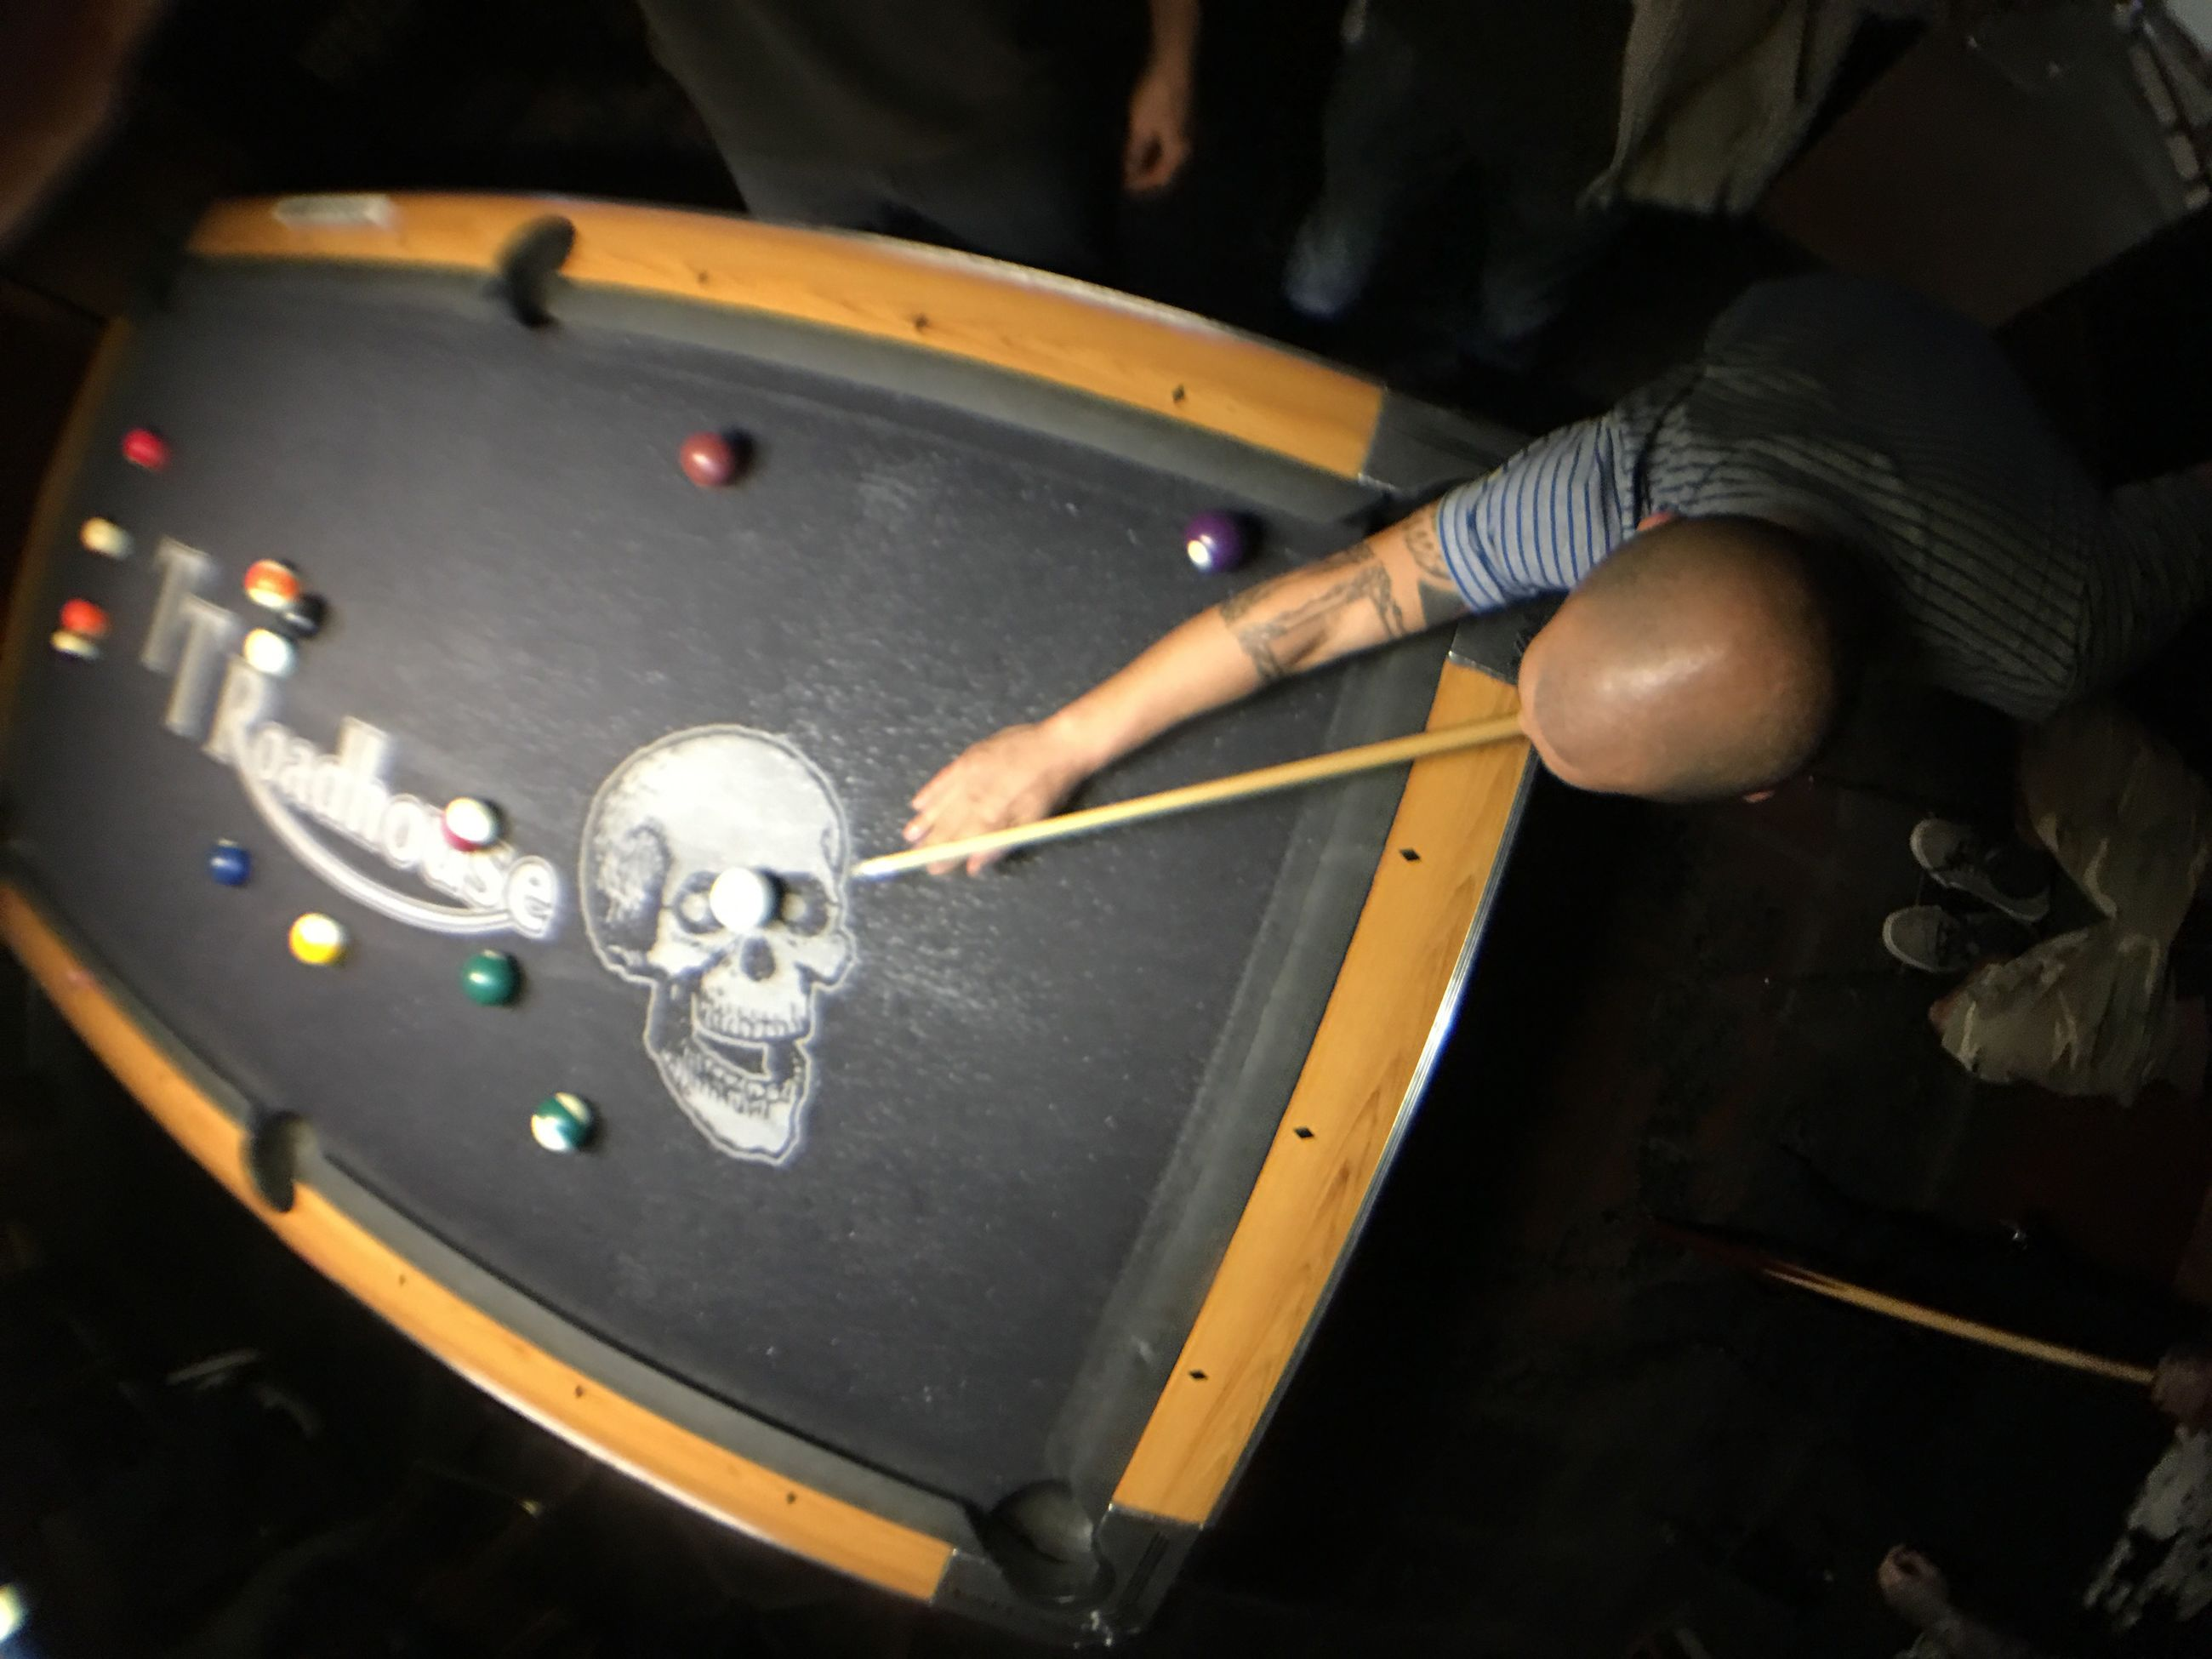 indoors, human hand, adults only, only men, playing, skill, adult, one man only, one person, men, real people, human body part, people, close-up, pool table, pool cue, pool ball, pool - cue sport, musical instrument, day, cue ball, snooker